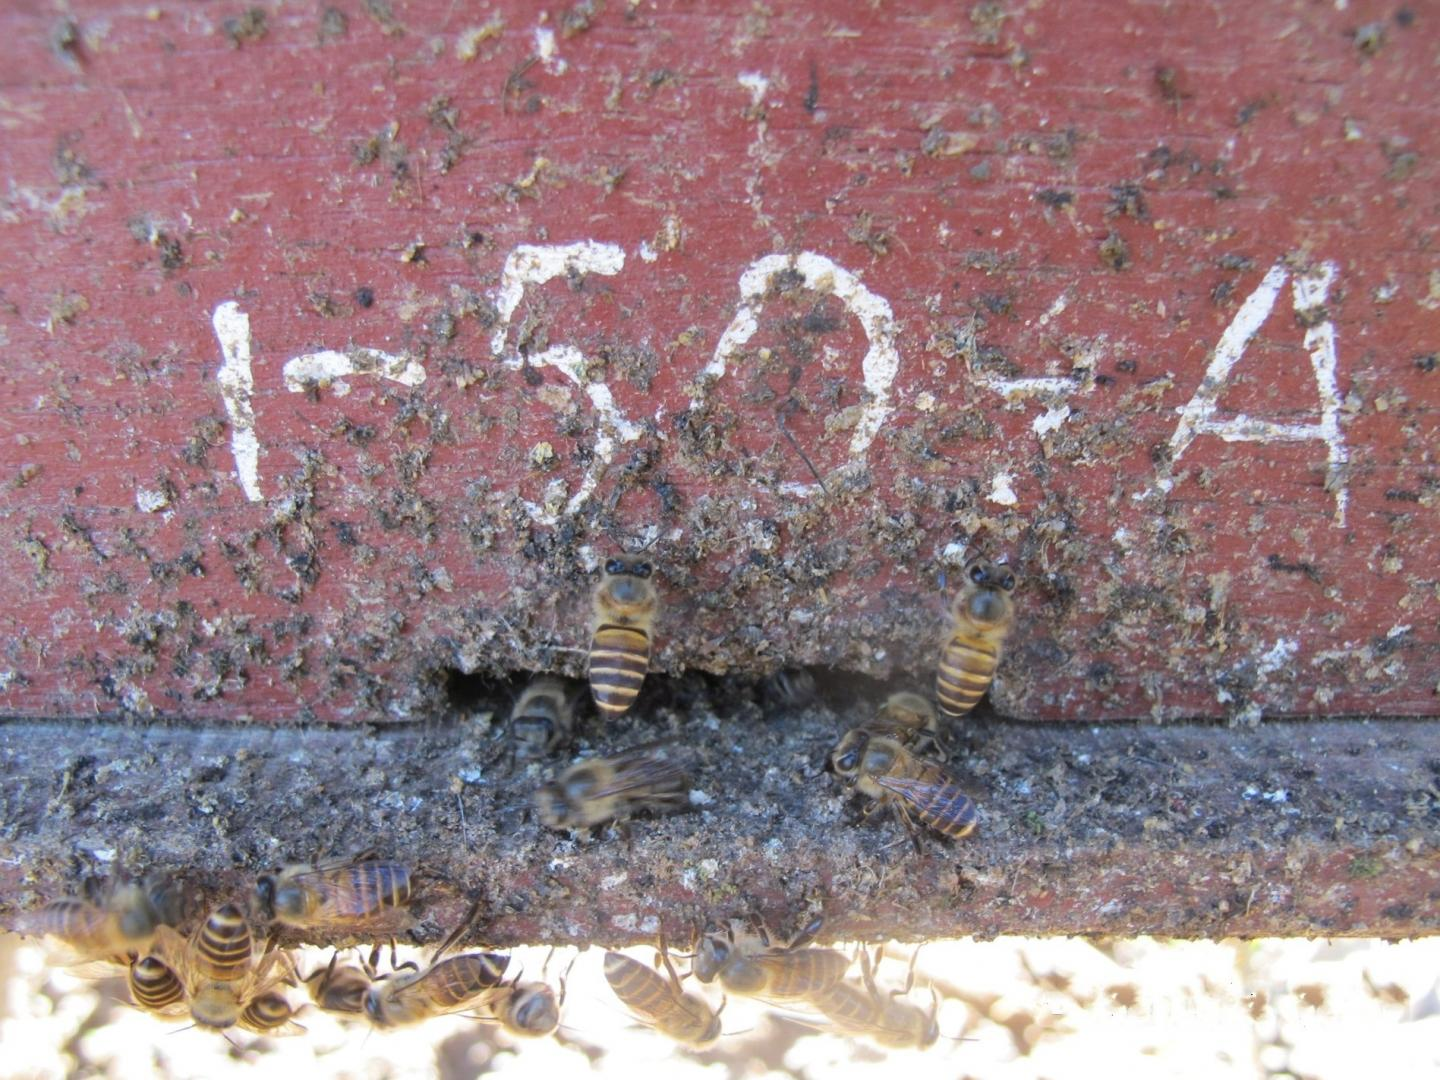 Fecal spotting and honey bees at hive entrance